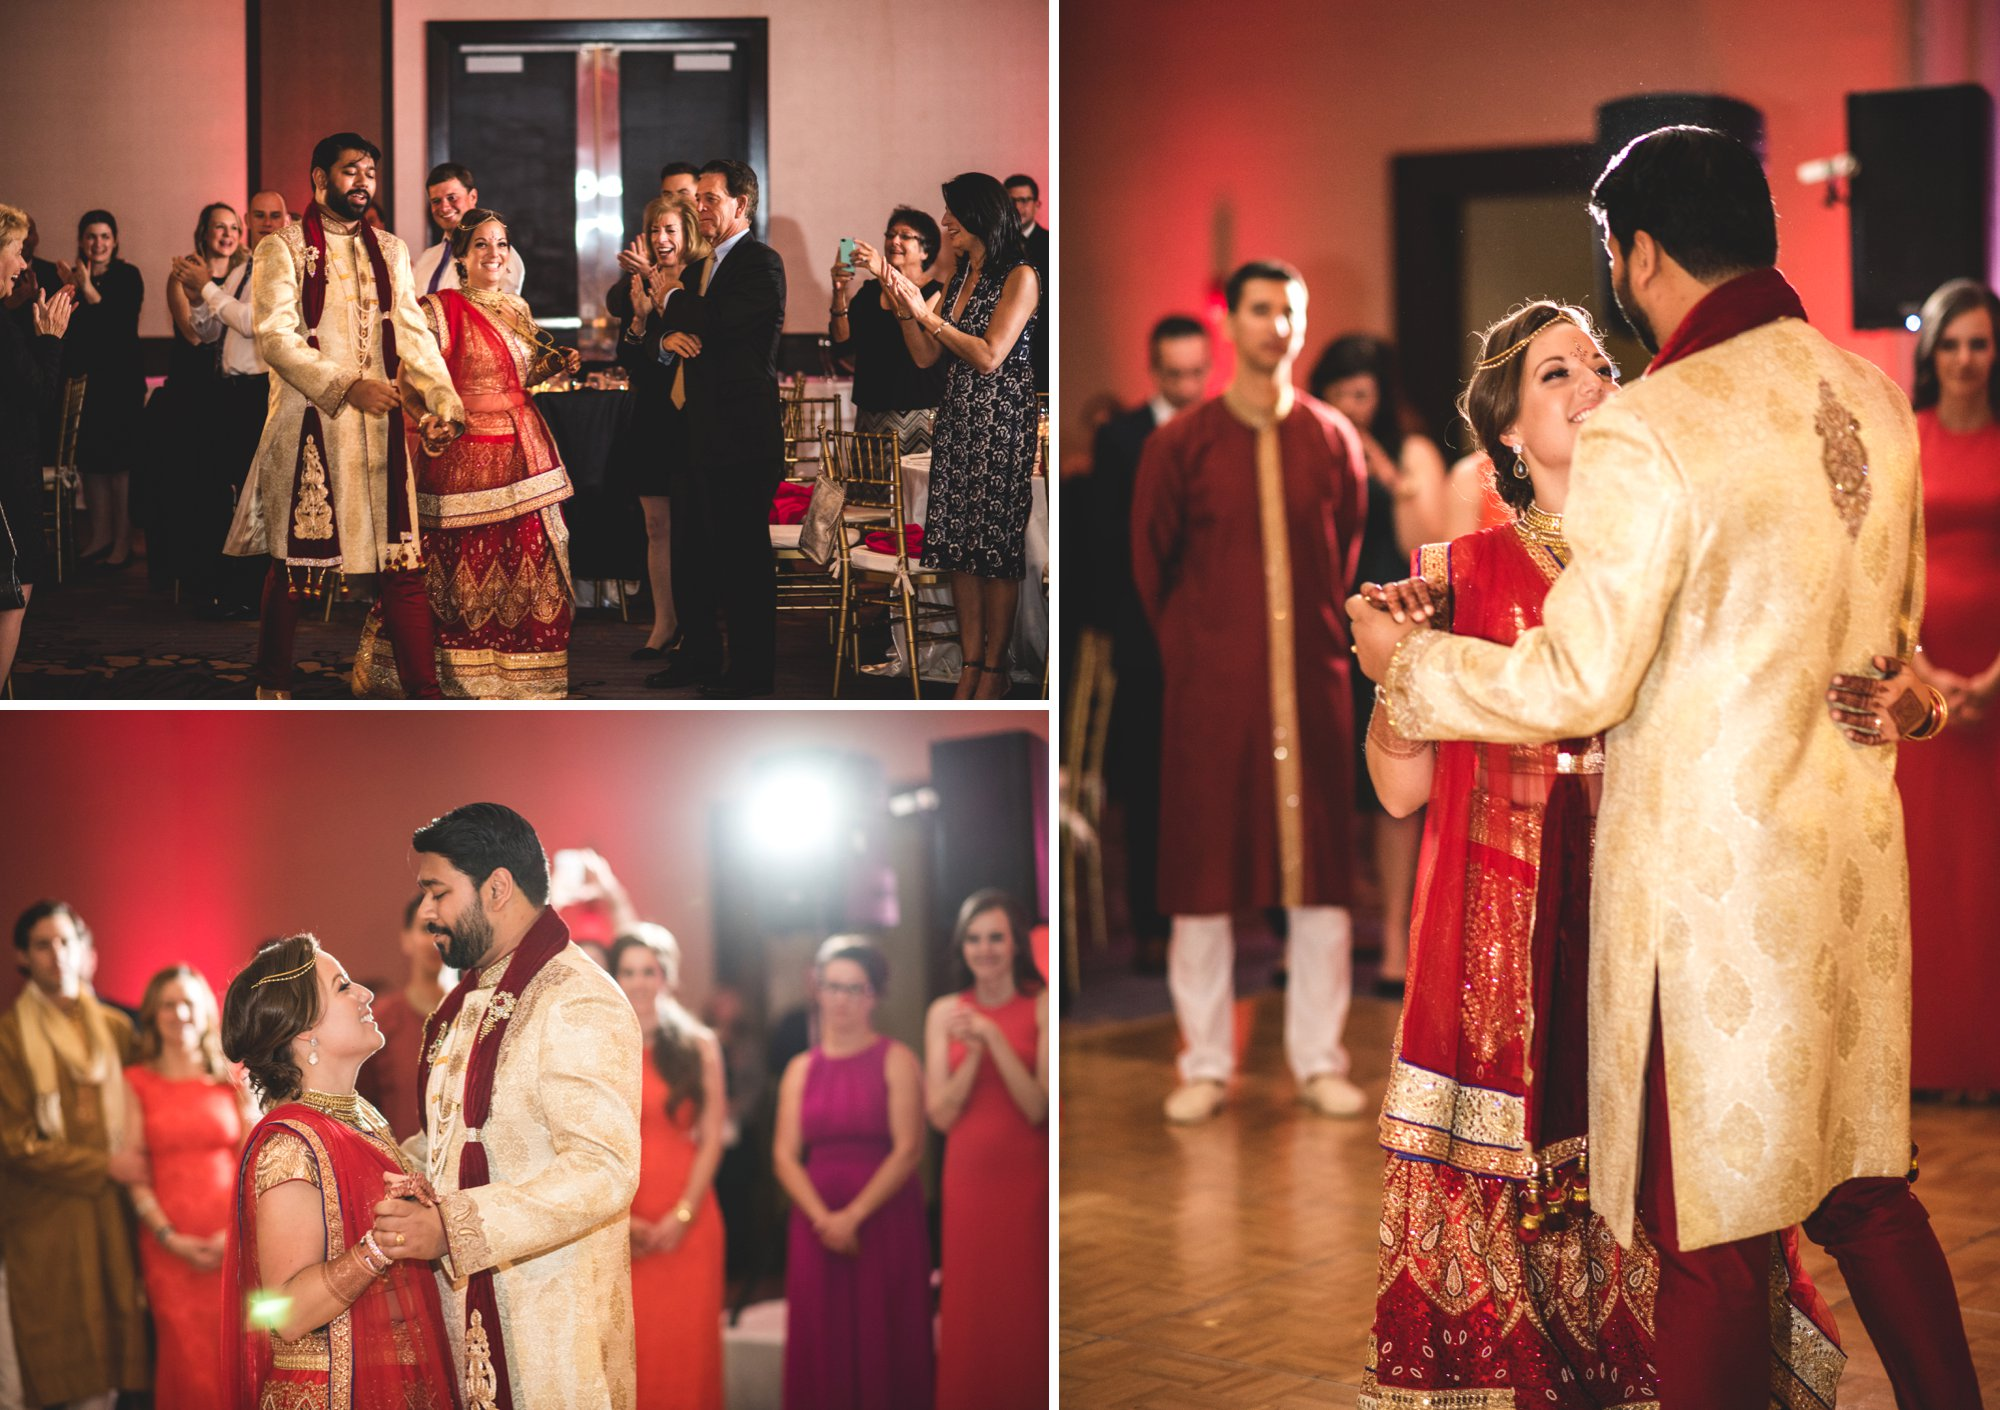 Washington DC colorful Indian wedding with a feminist bride. Dancing.